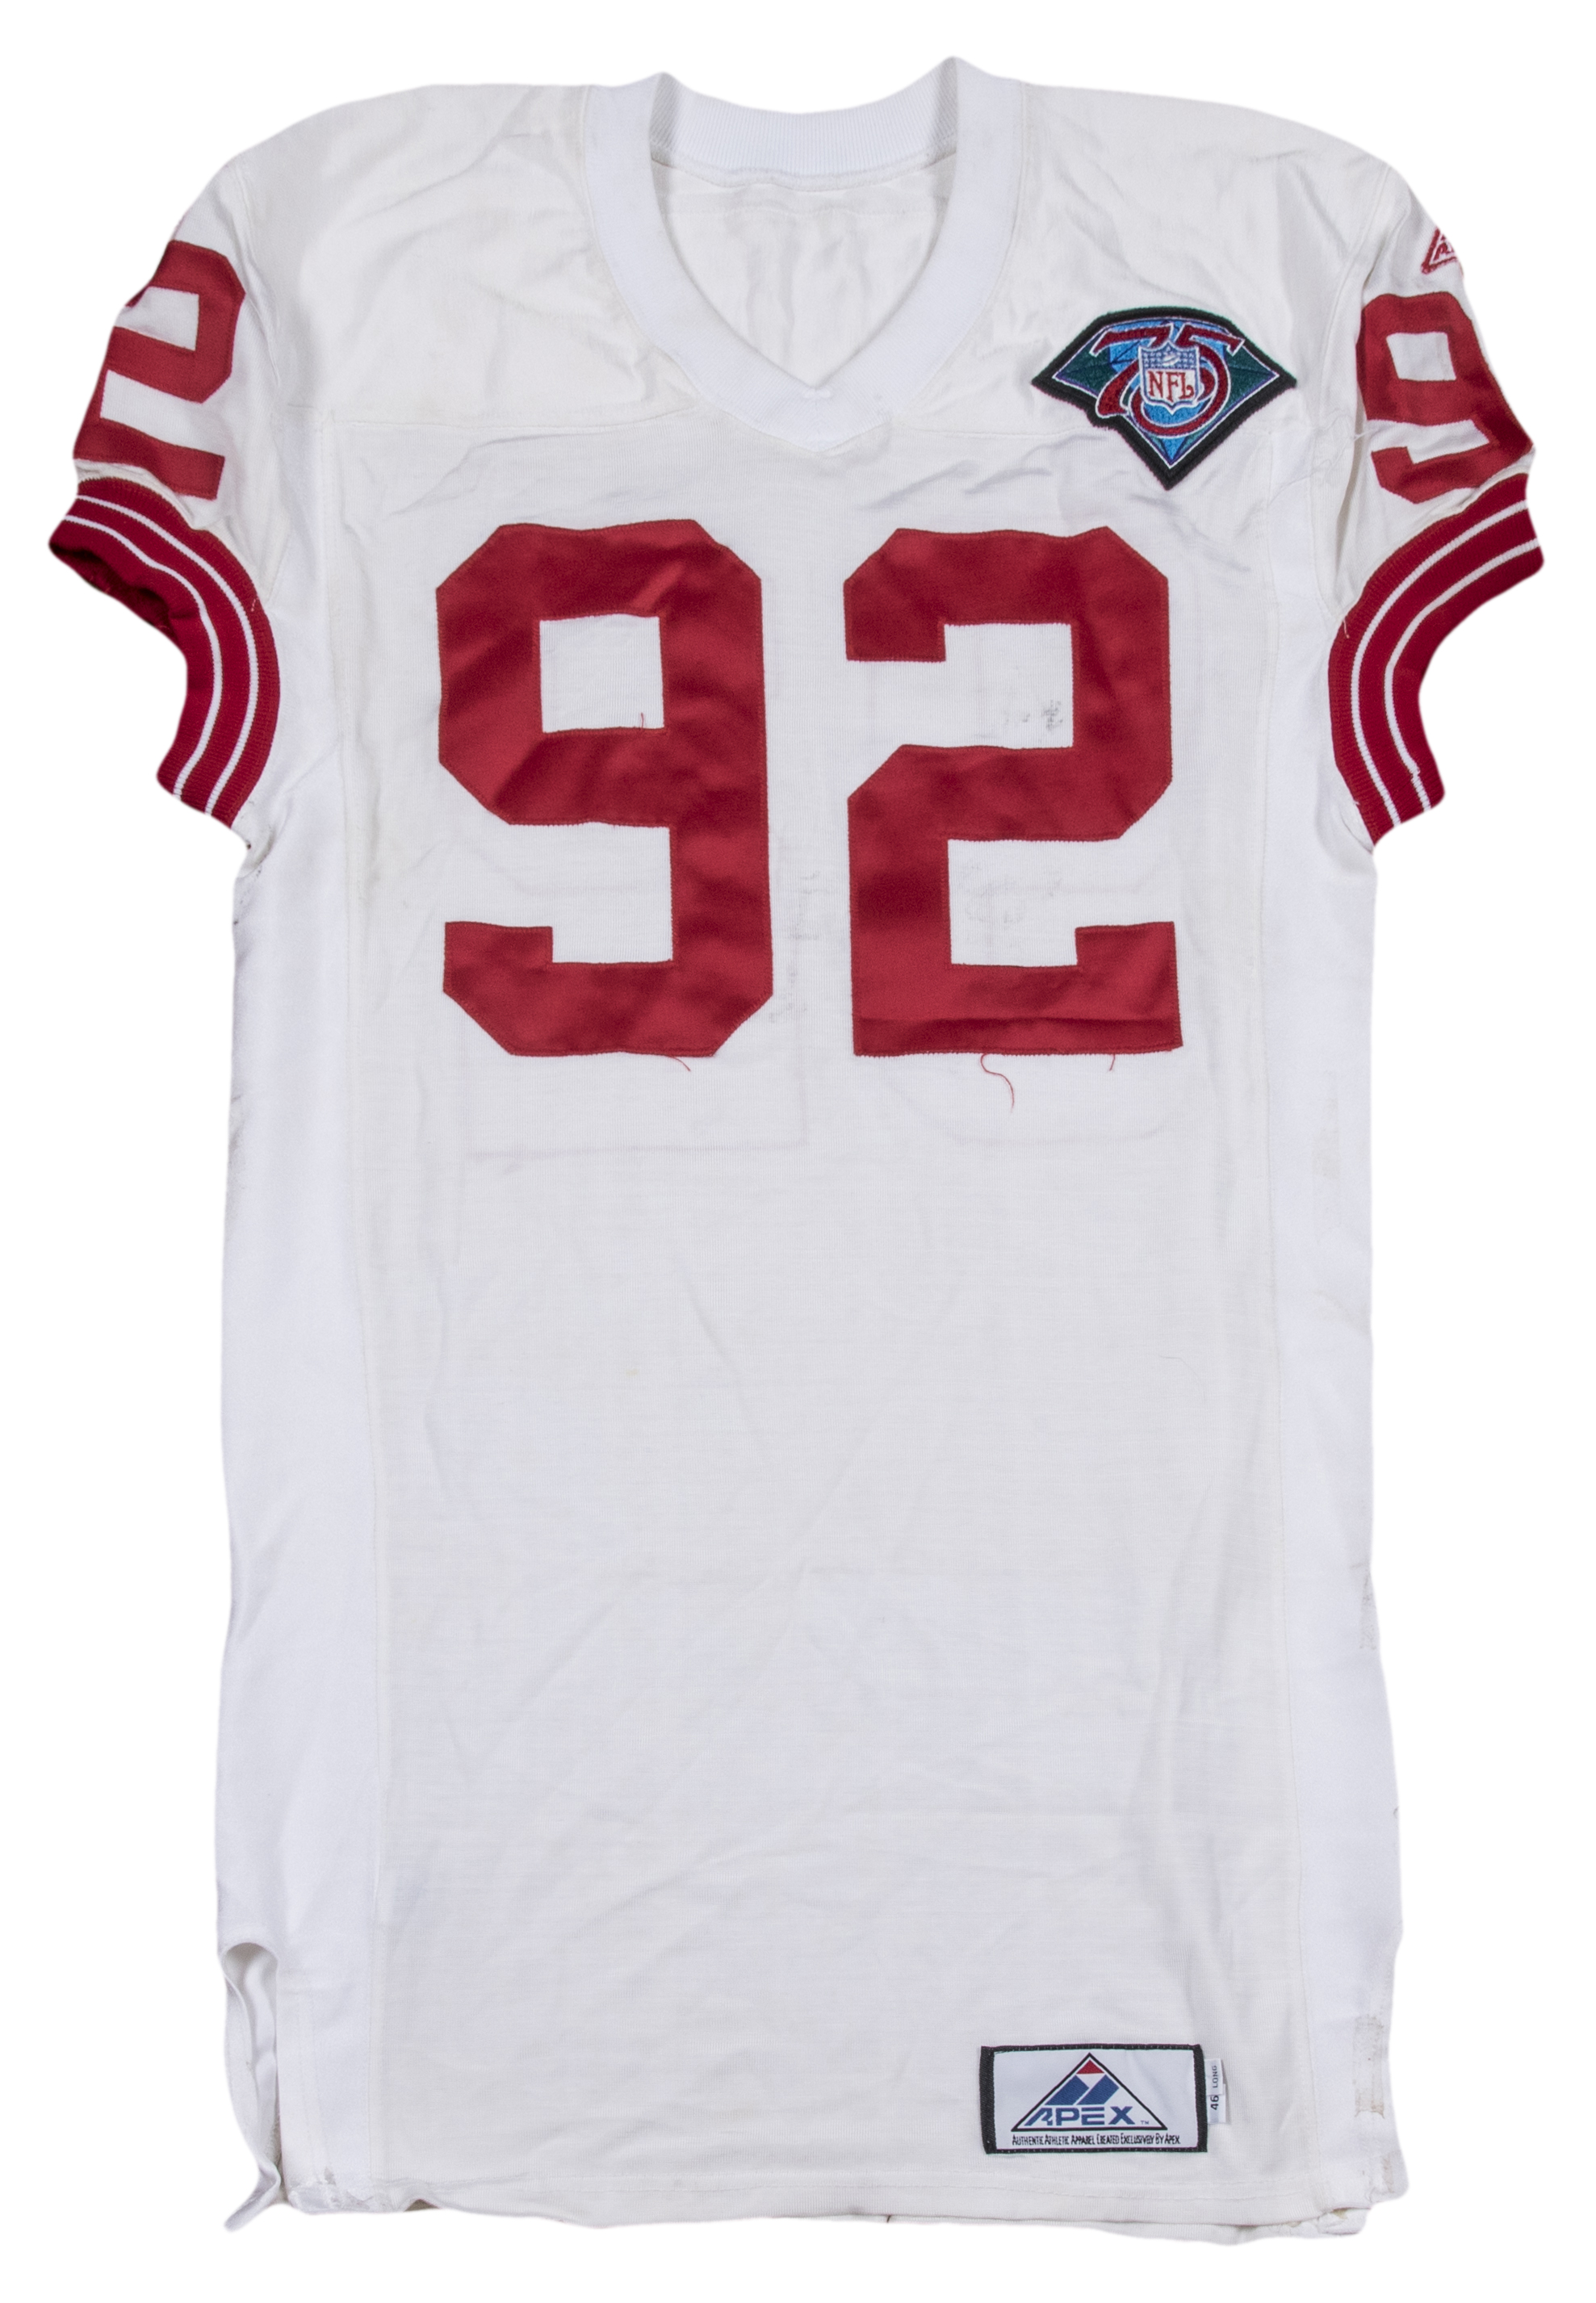 1994 Michael Strahan Game Used   Signed New York Giants Throwback Road  Jersey With NFL 75th Anniversary Patch (Strahan LOA) 3fba2a52f